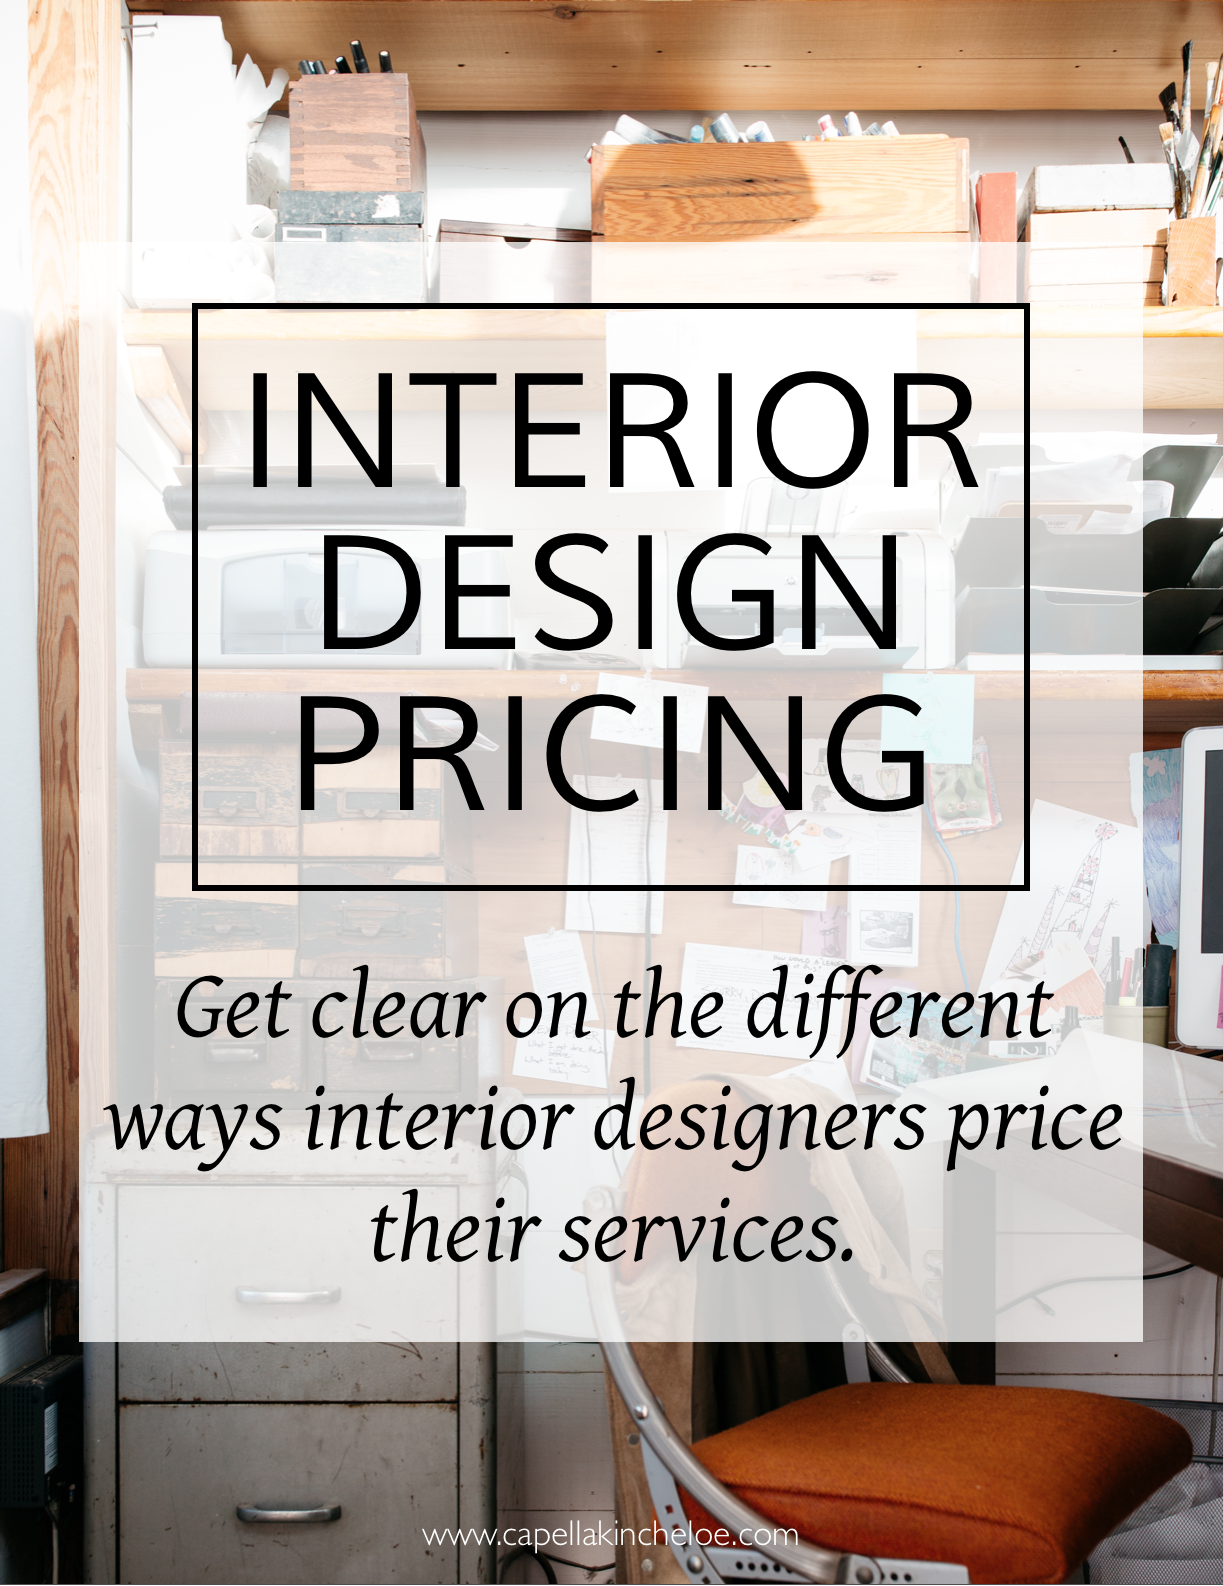 Pricing interior design services can be confusing.  This article clears up all the different ways that interior designers price and Gives examples!